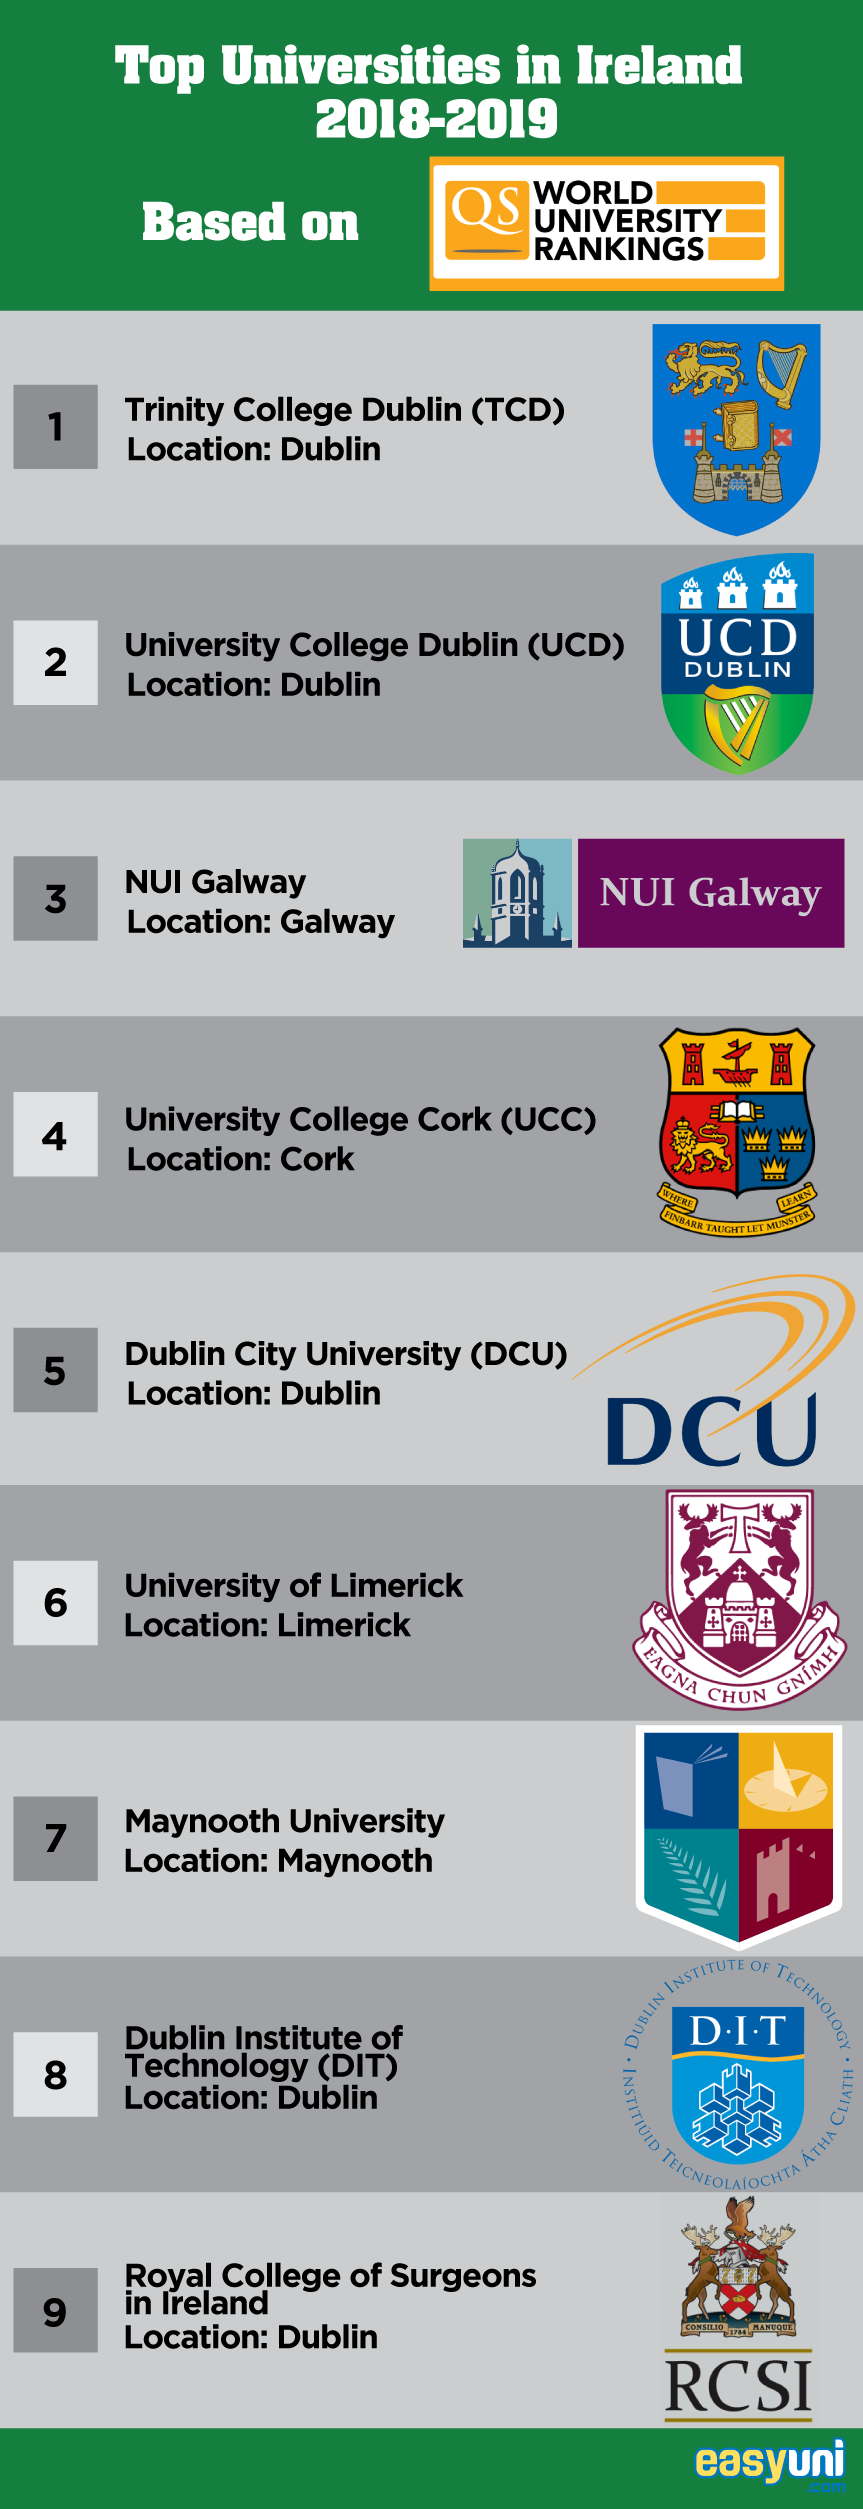 Top Universities in Ireland 2019